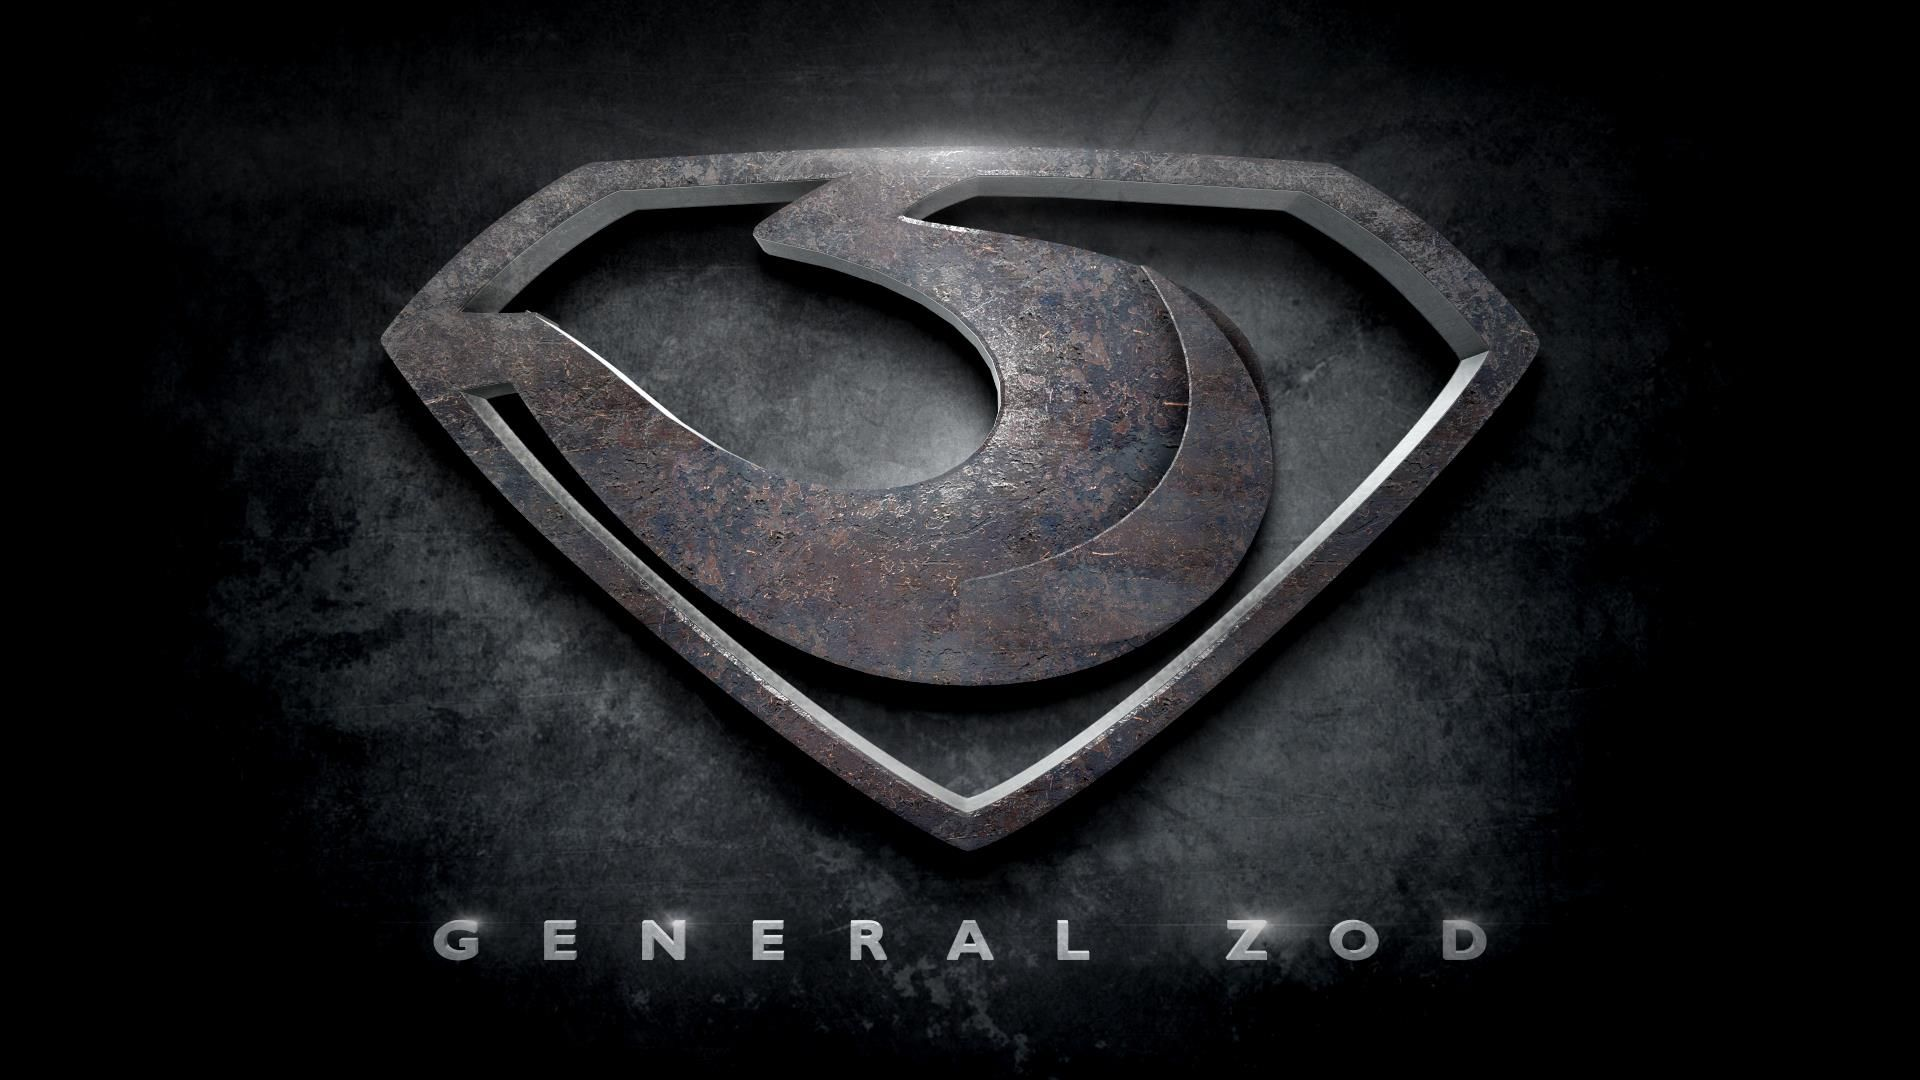 Symbol for general zod from man of steel fandom and other art symbol for general zod from man of steel biocorpaavc Choice Image